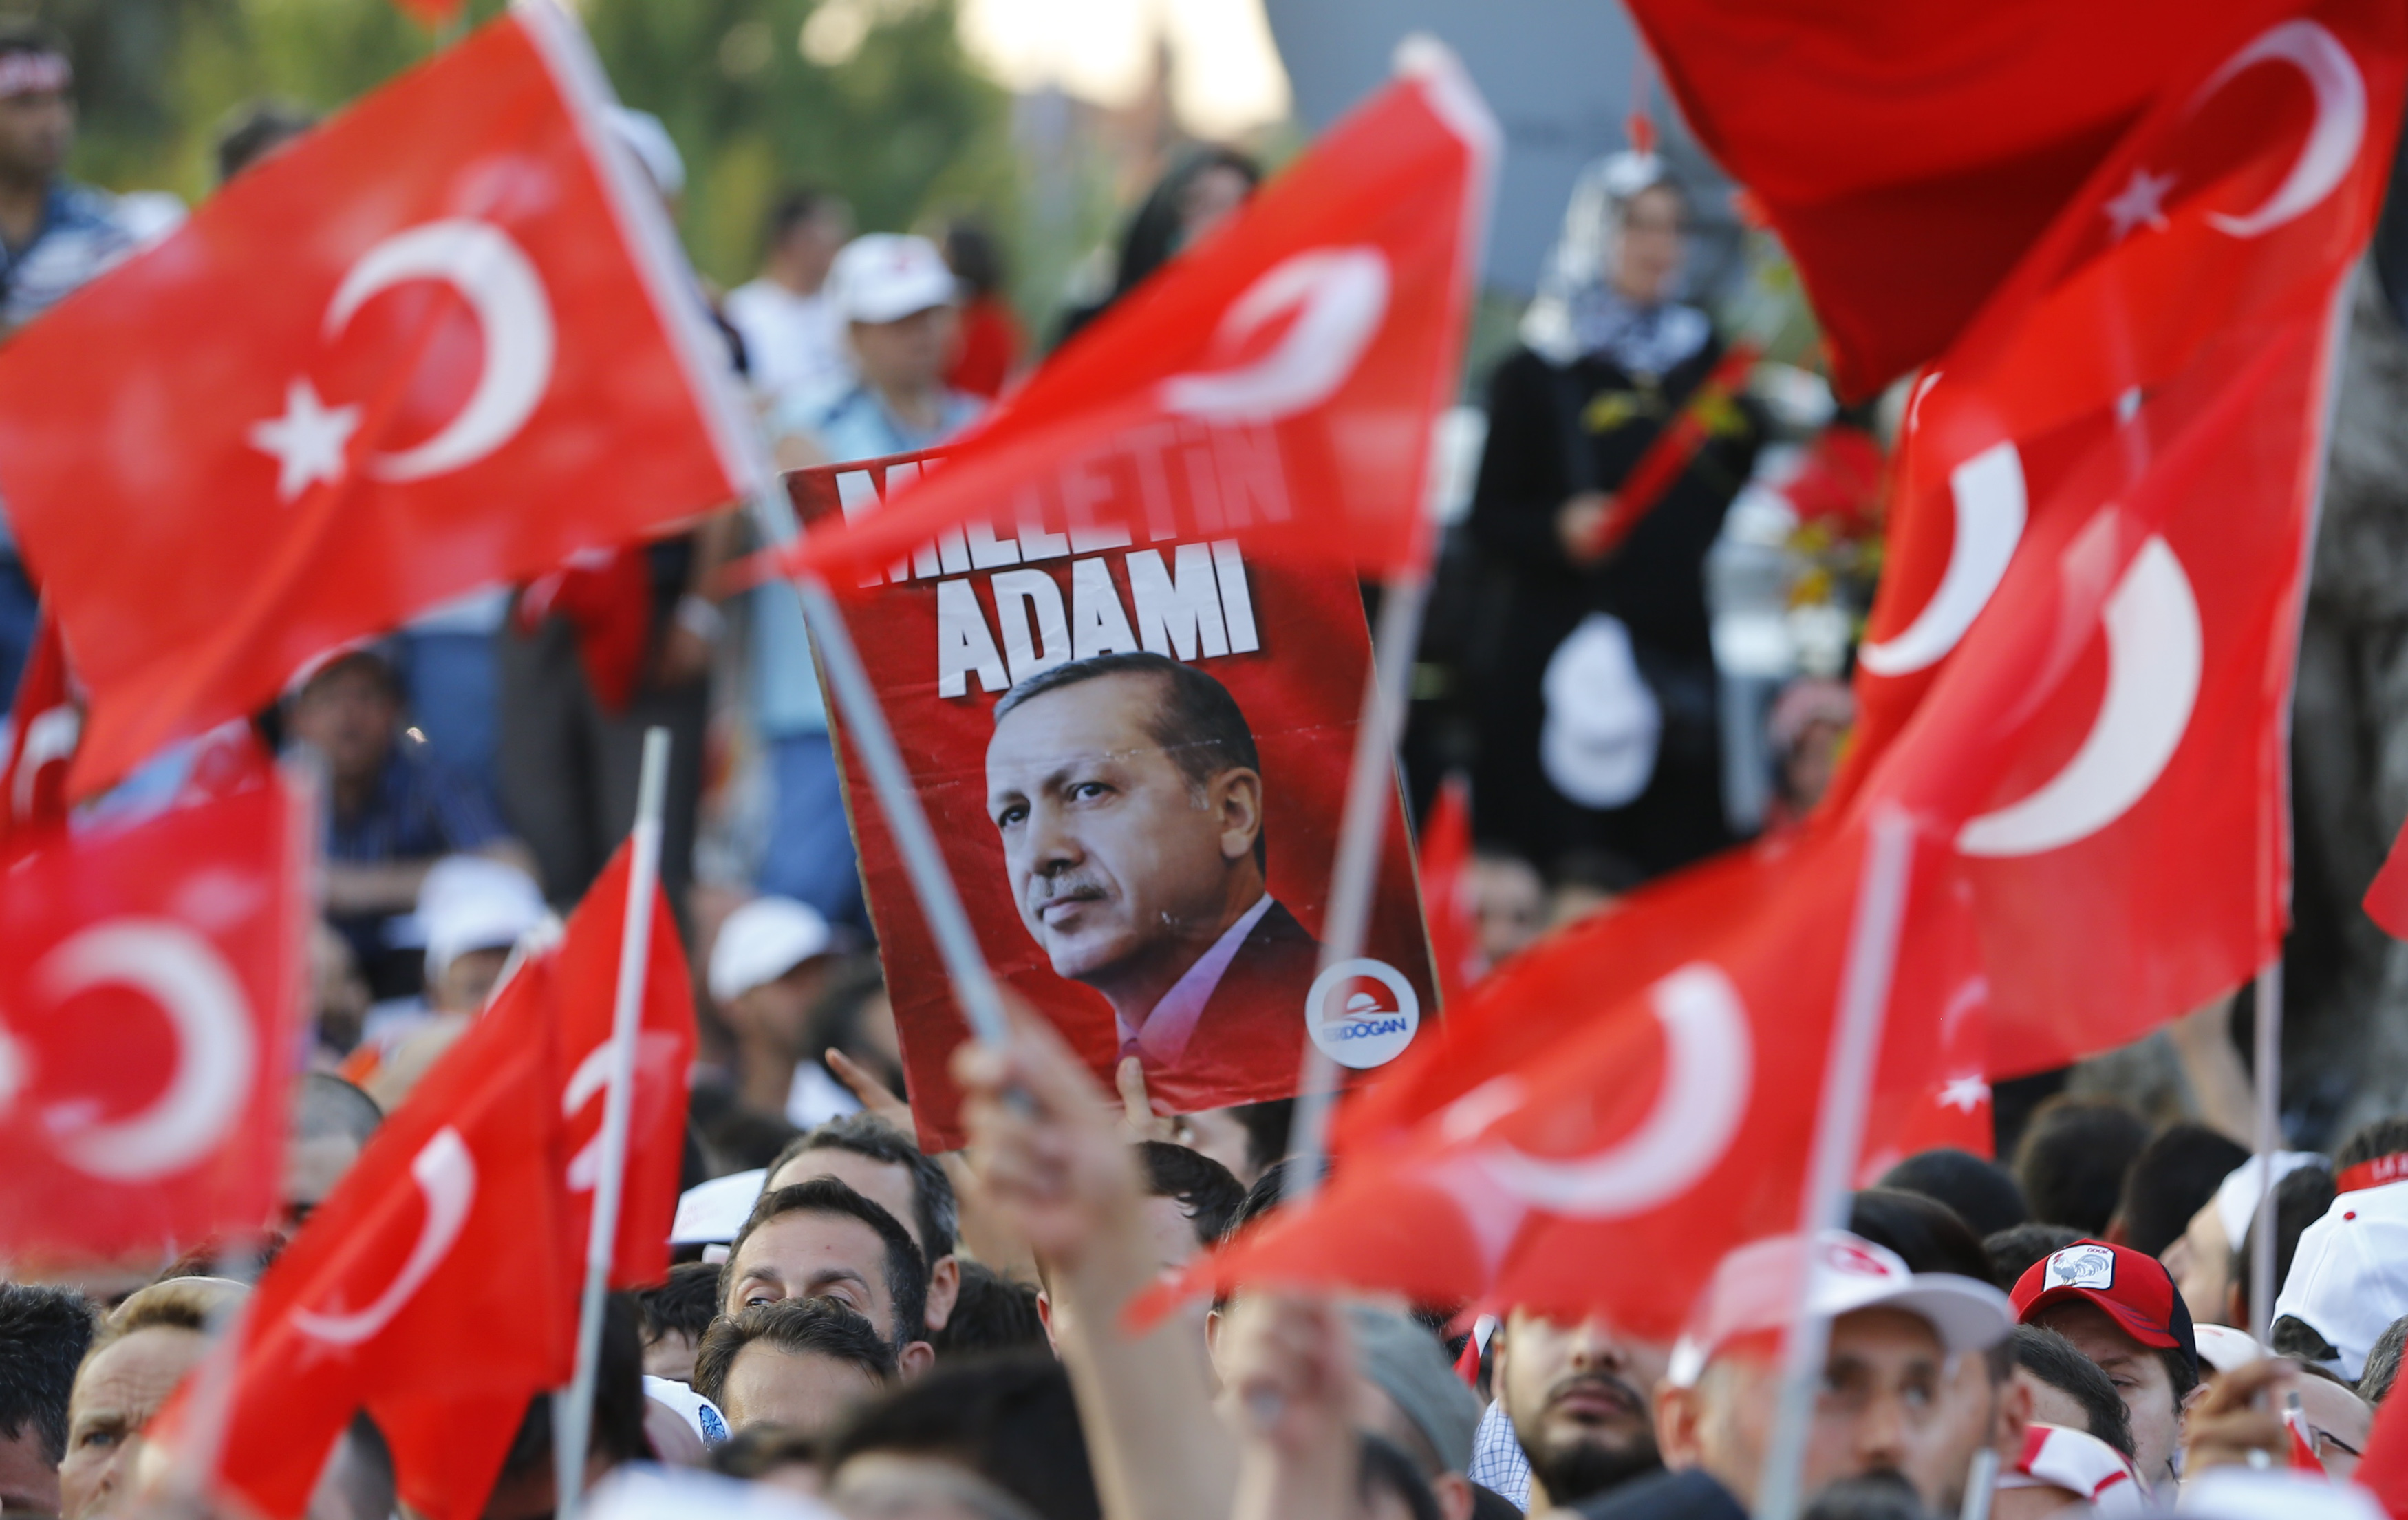 People wave flags as they wait for Turkish President Tayyip Erdogan to speak in Istanbul, Turkey.